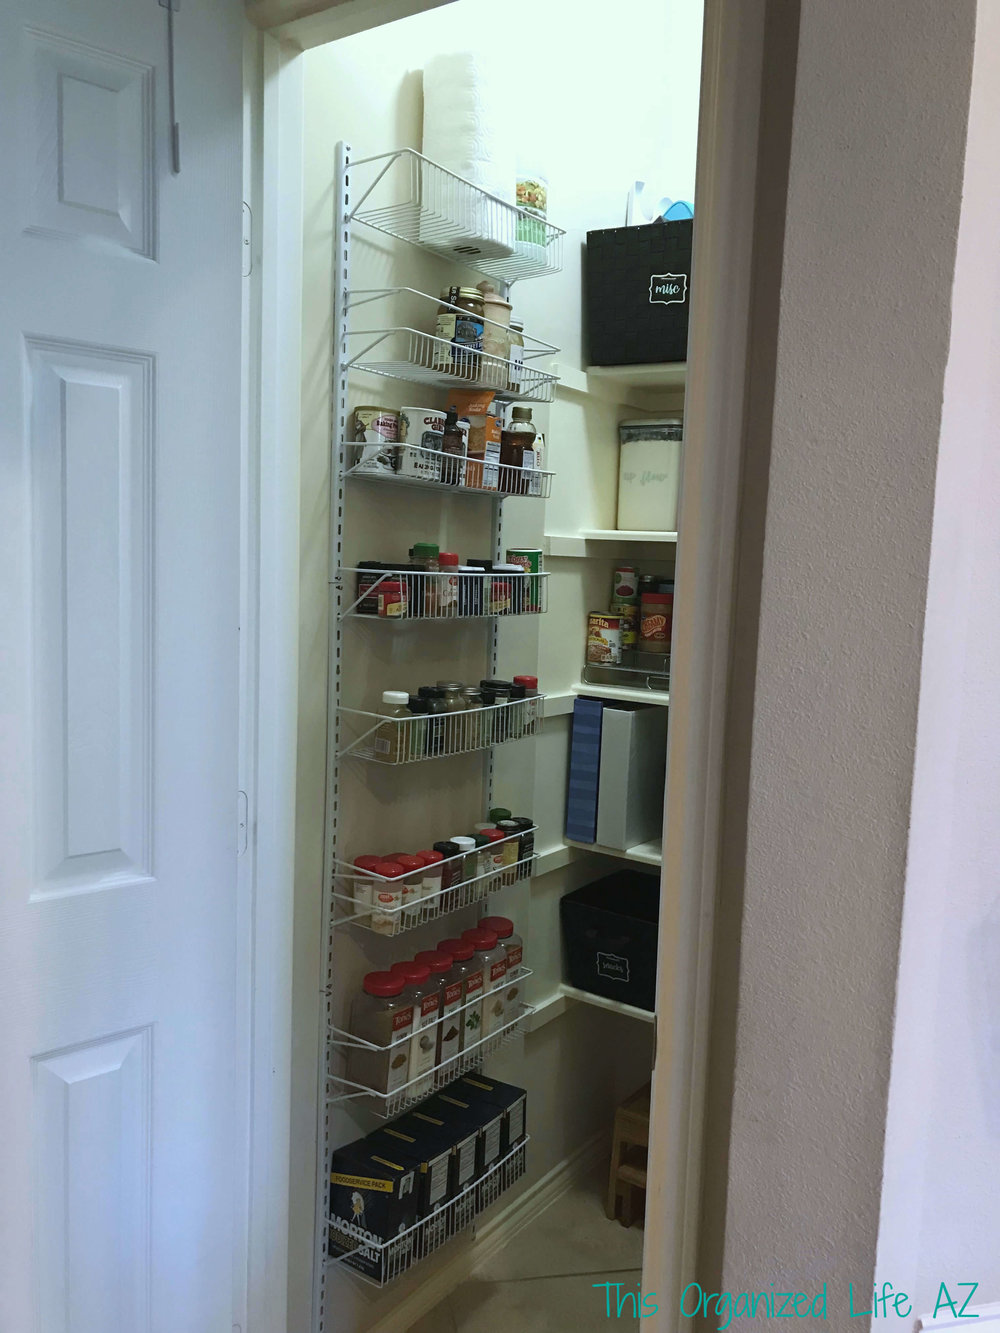 Home-Organizer-This-Organized-Life-AZ-Tempe-AZ-Kitchen-Pantry